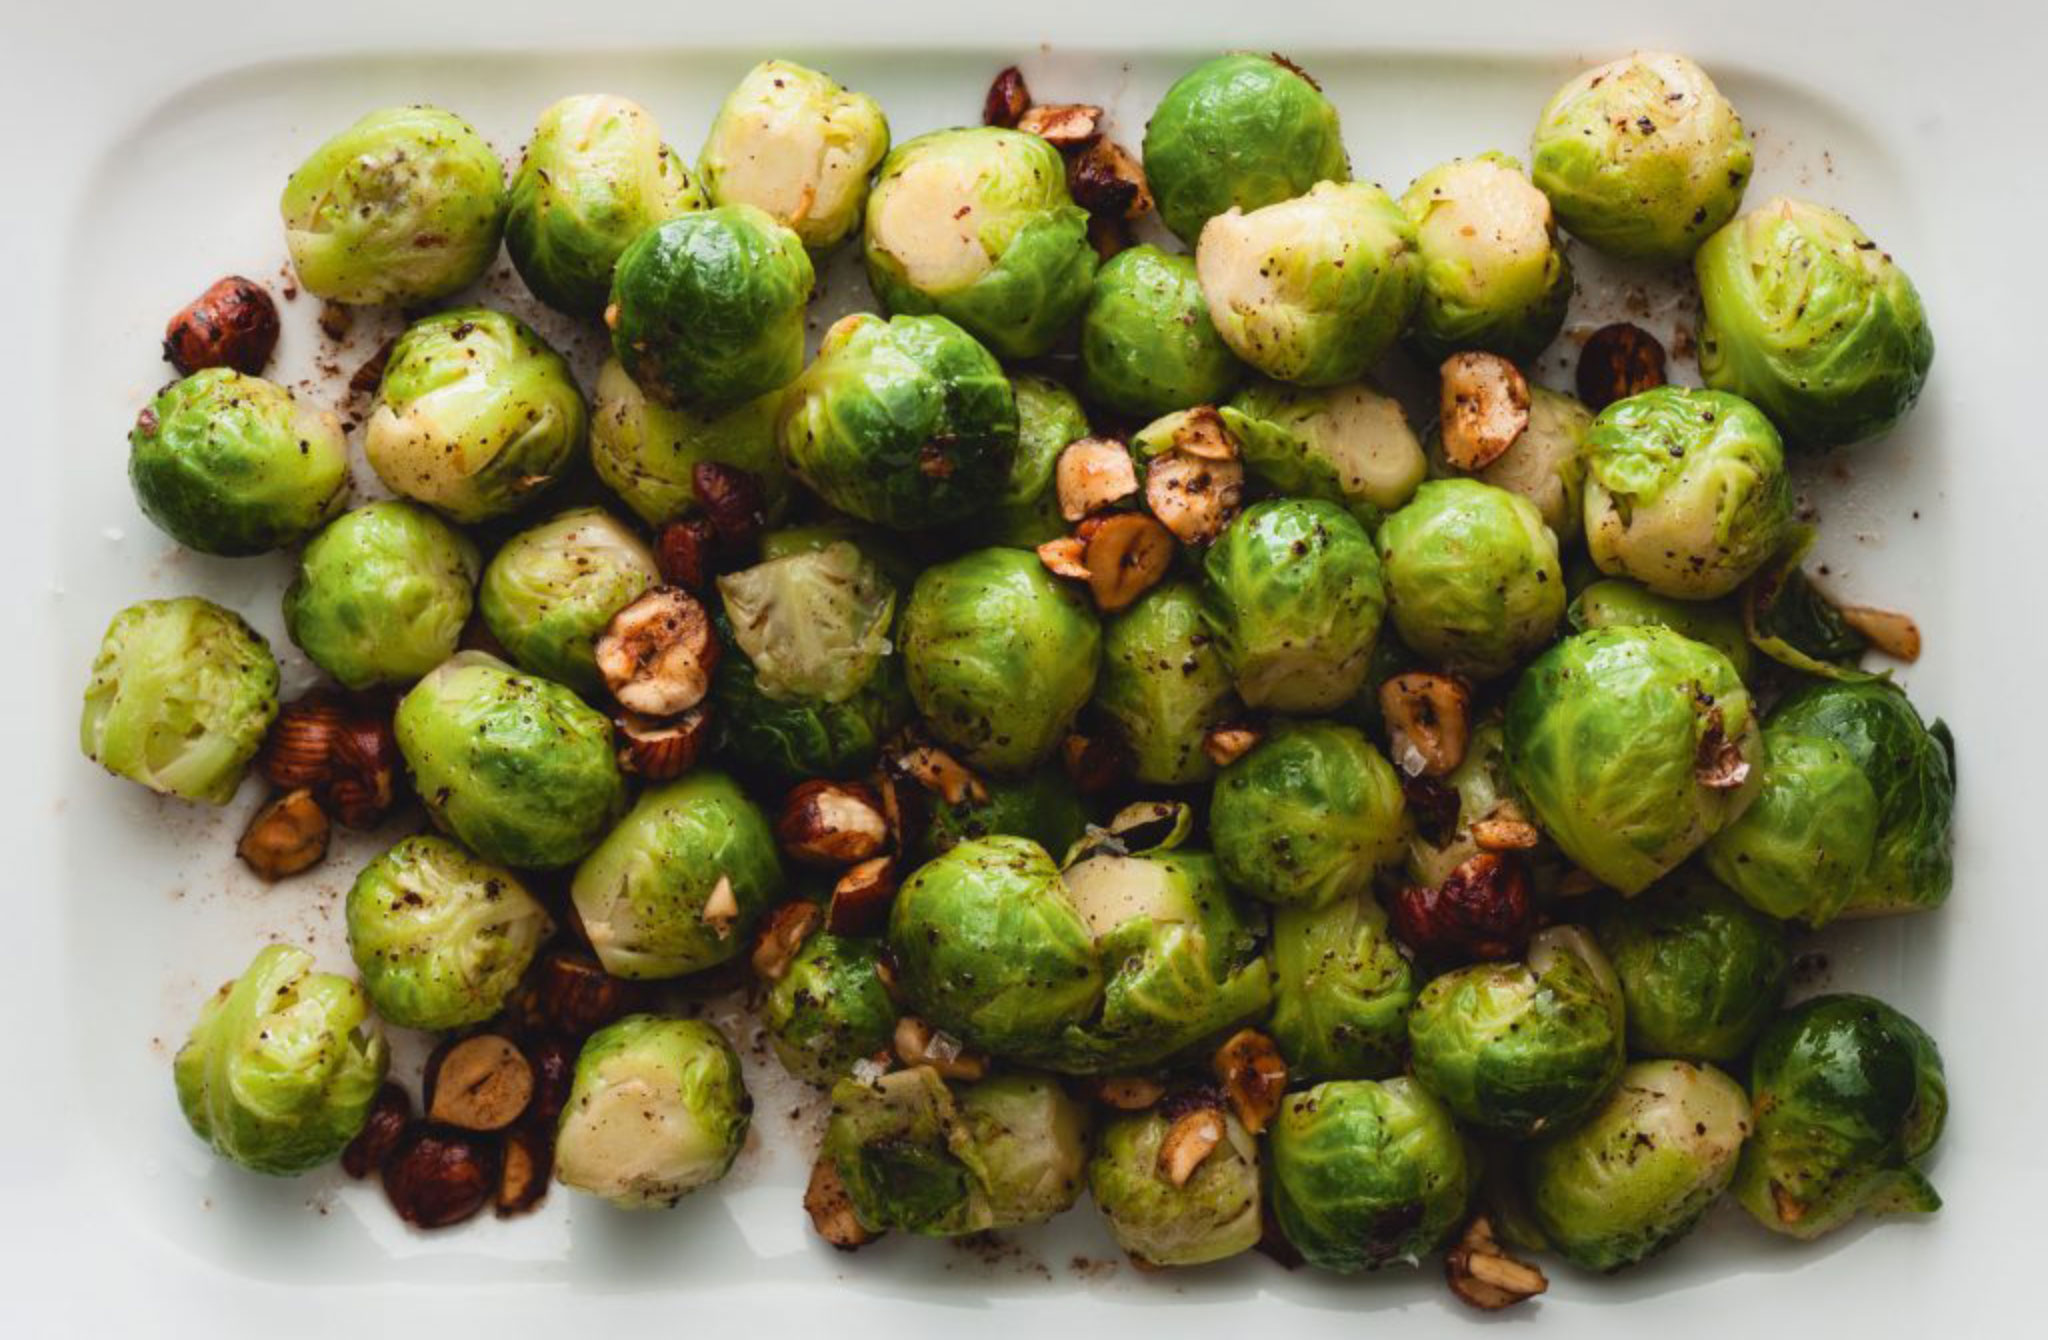 Sprouts Christmas Eve Hours 2020 Gordon Ramsay's Brussels Sprouts With Pancetta | Dinner Recipes